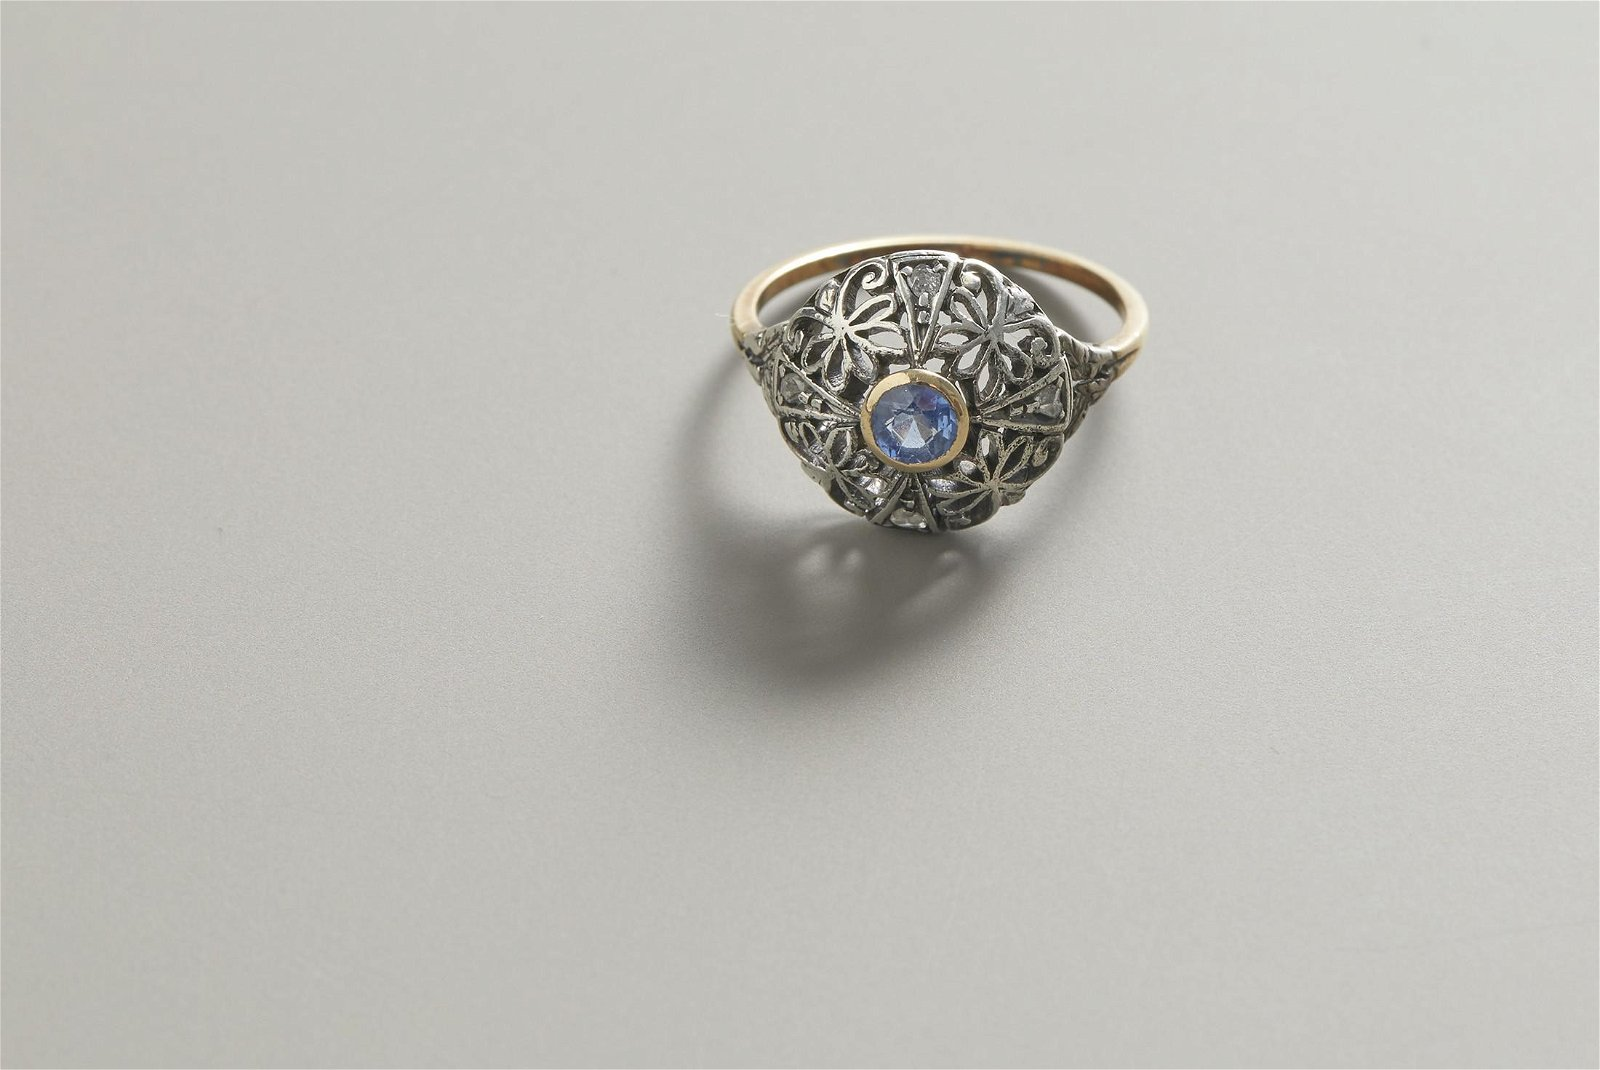 Ring in yellow gold and silver with sapphires and